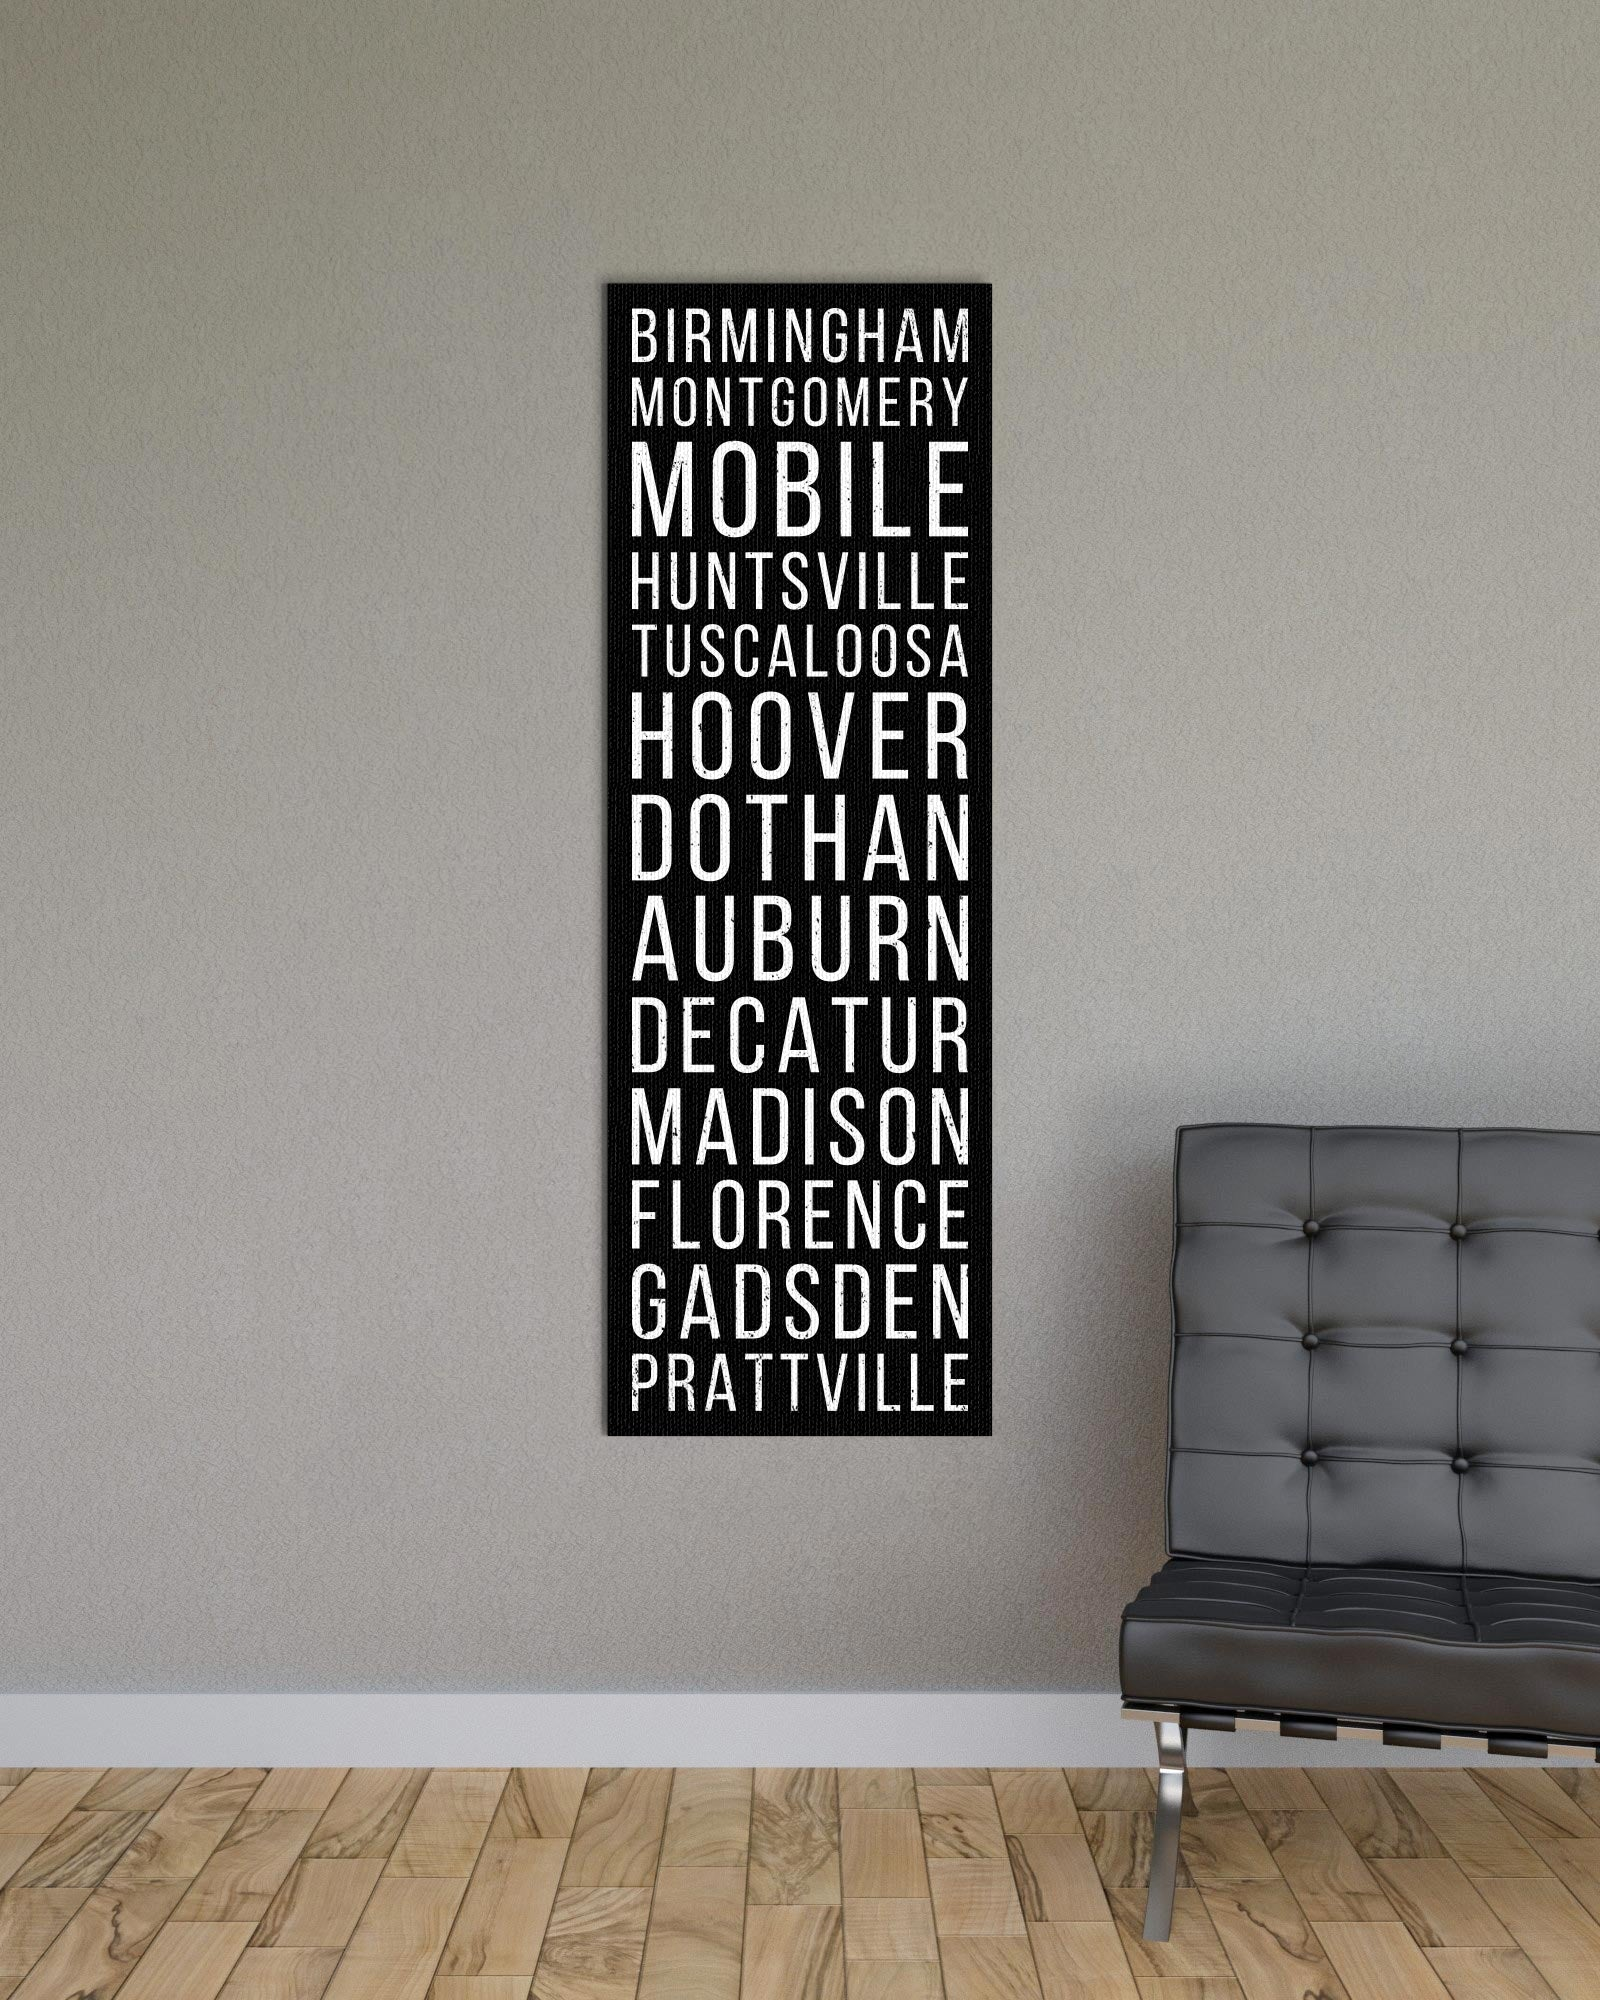 Alabama Birmingham Montgomery Mobile Bus Scroll Subway Print